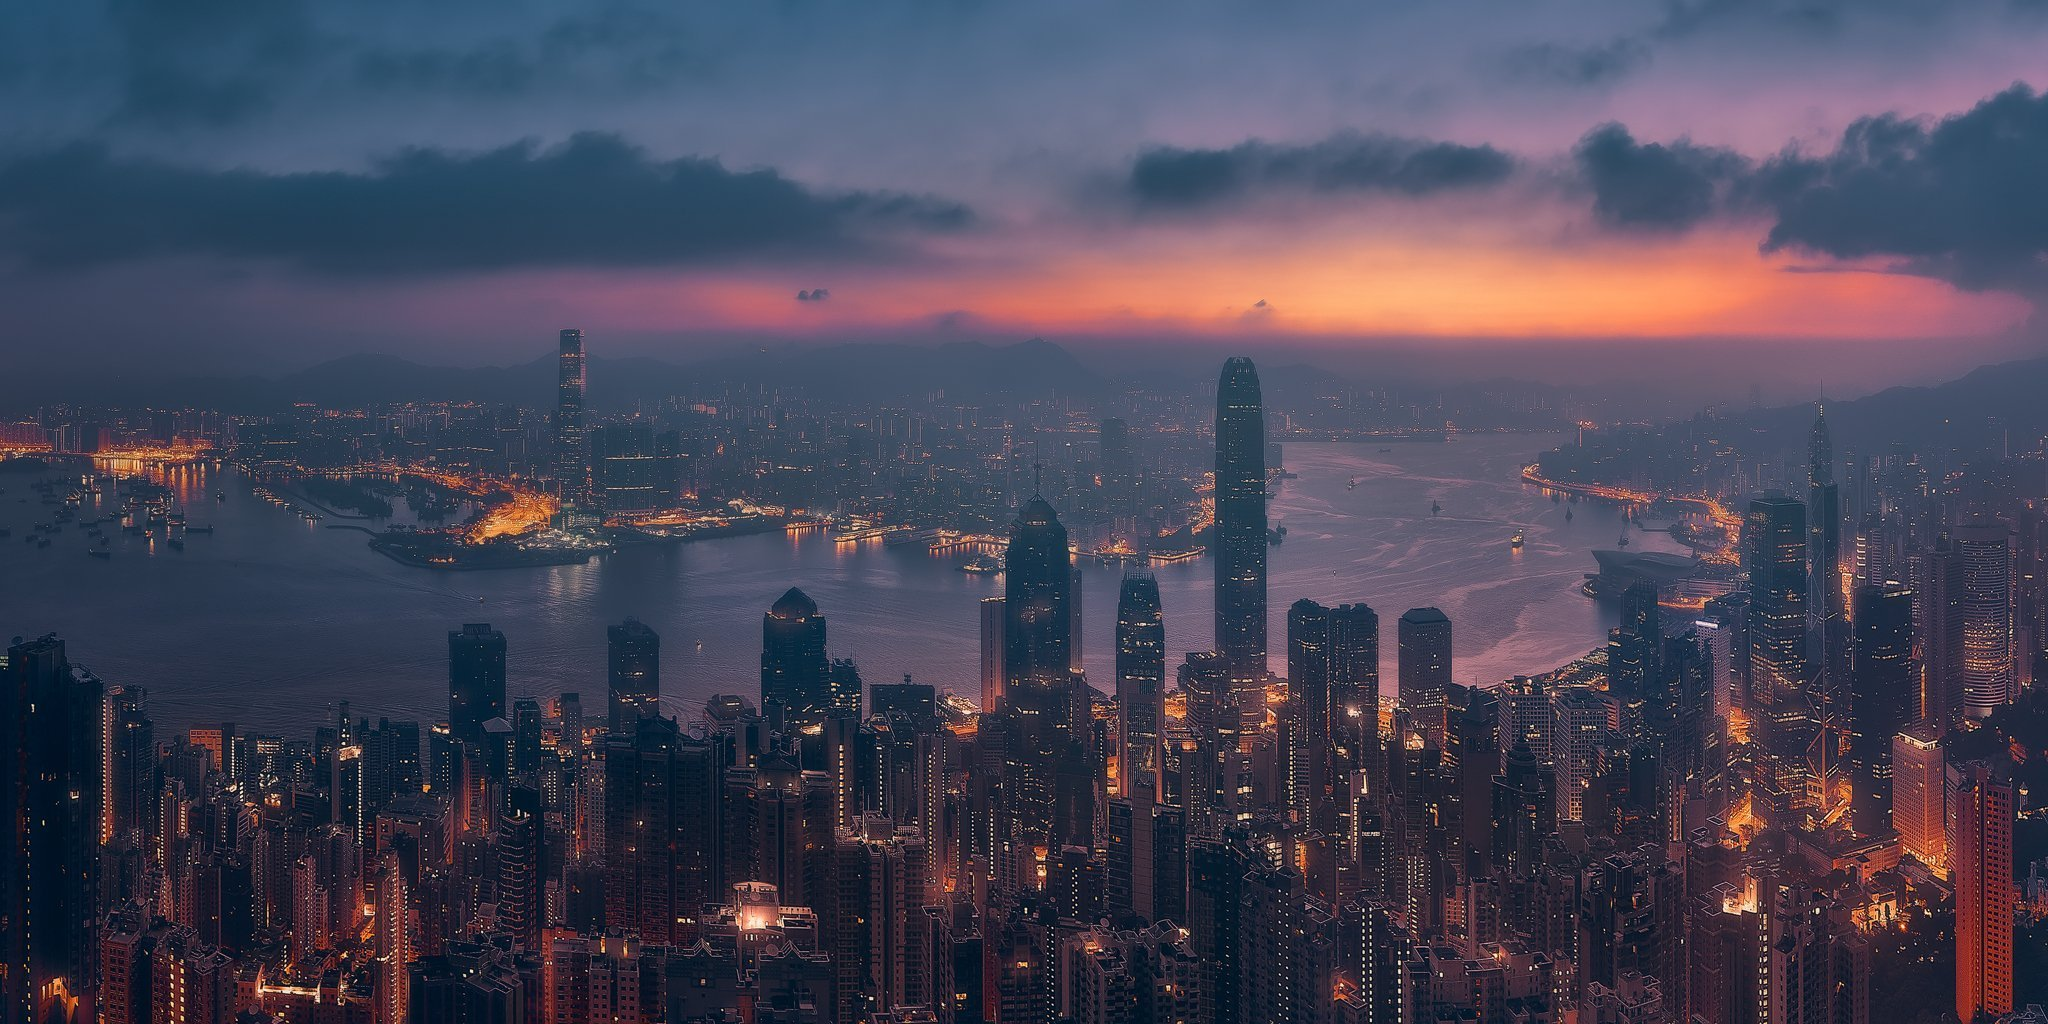 Sunrising Hong Kong